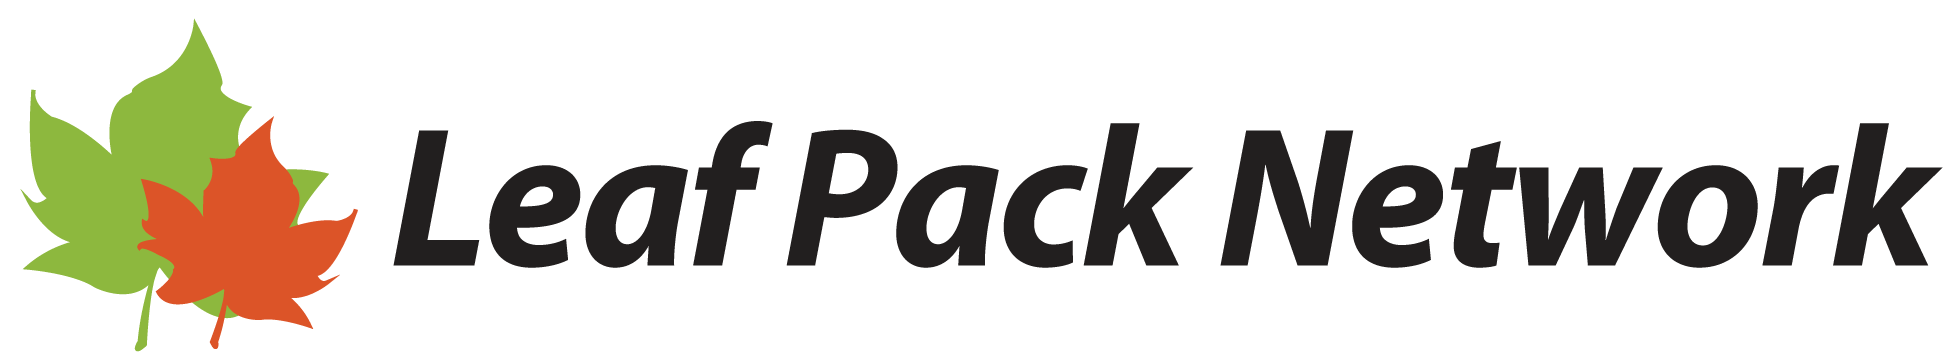 Leaf Pack Network logo